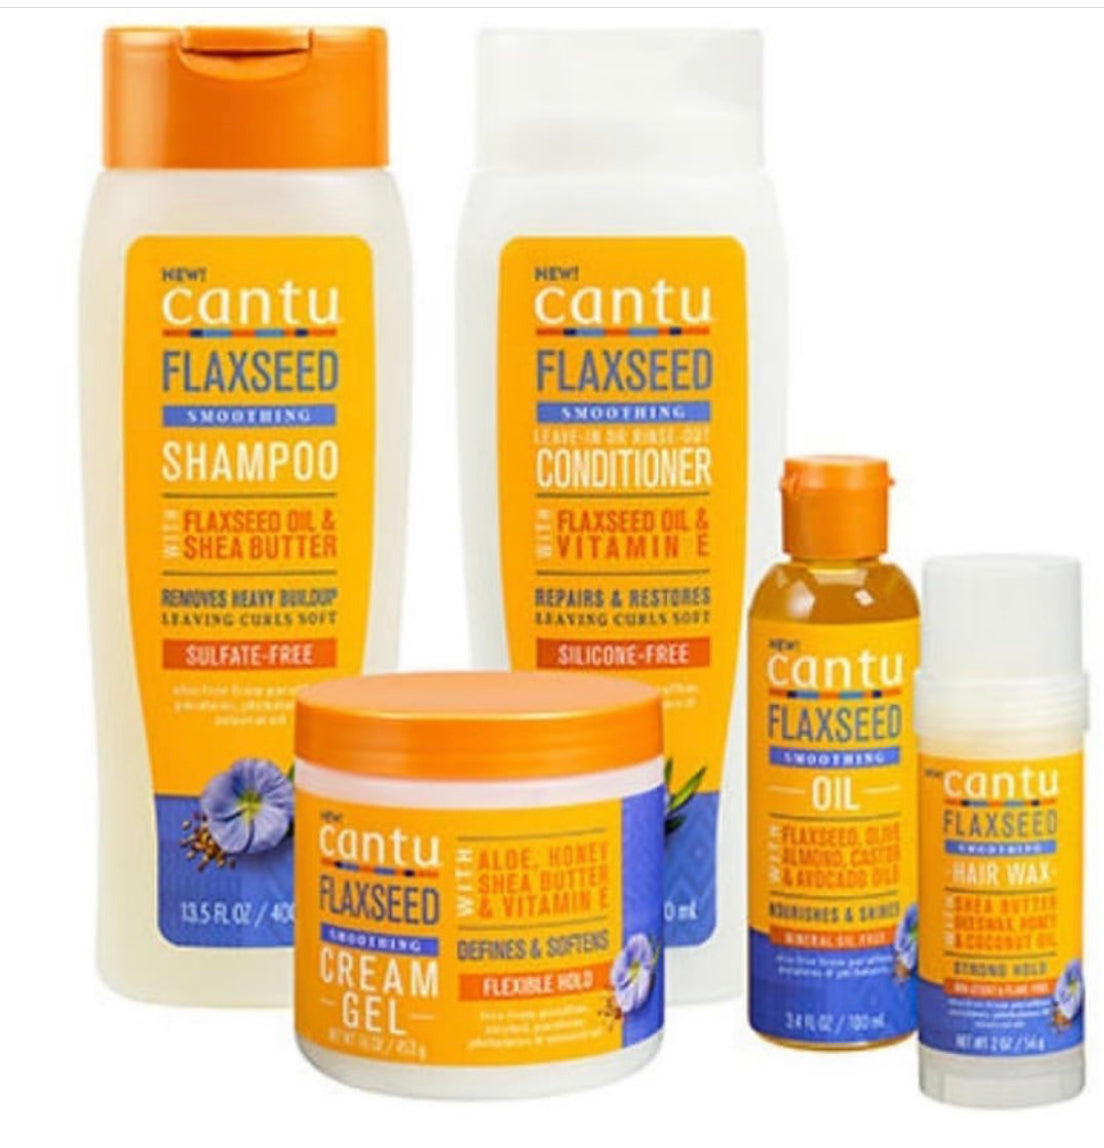 5 Reasons why you must try the NEW Cantu Flaxseed Collection